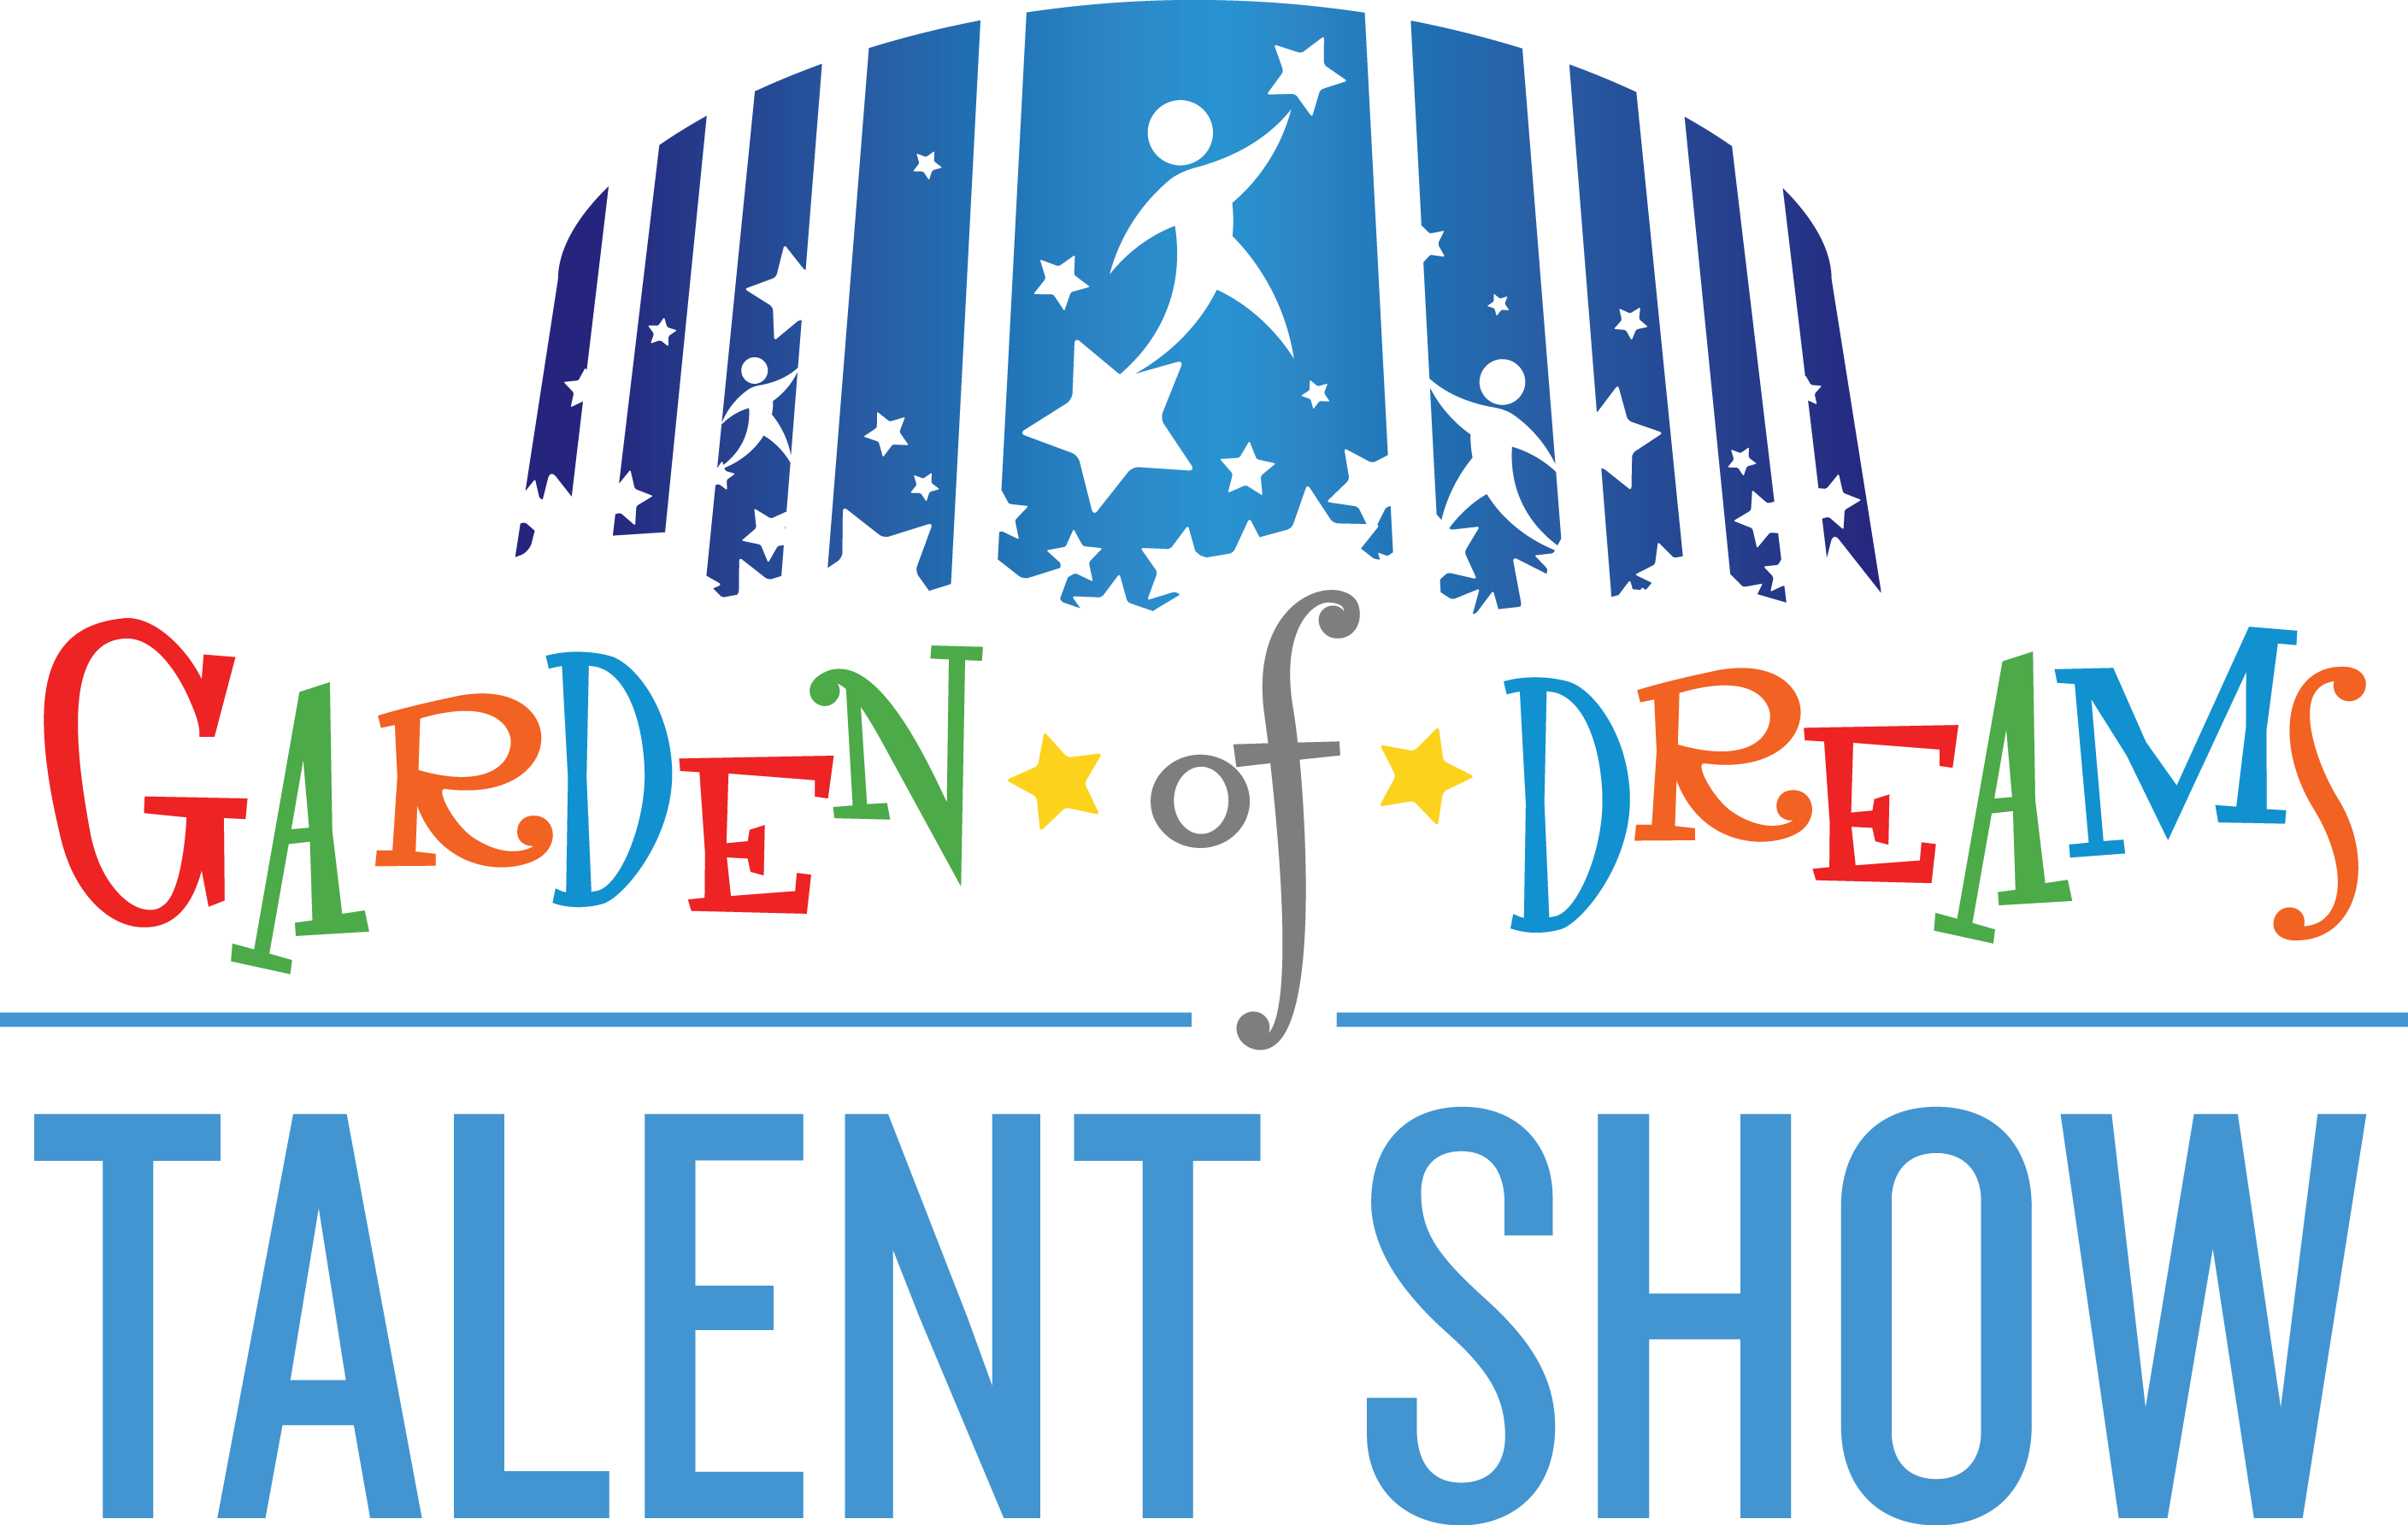 Garden of Dreams Talent Show at Radio City Music Hall